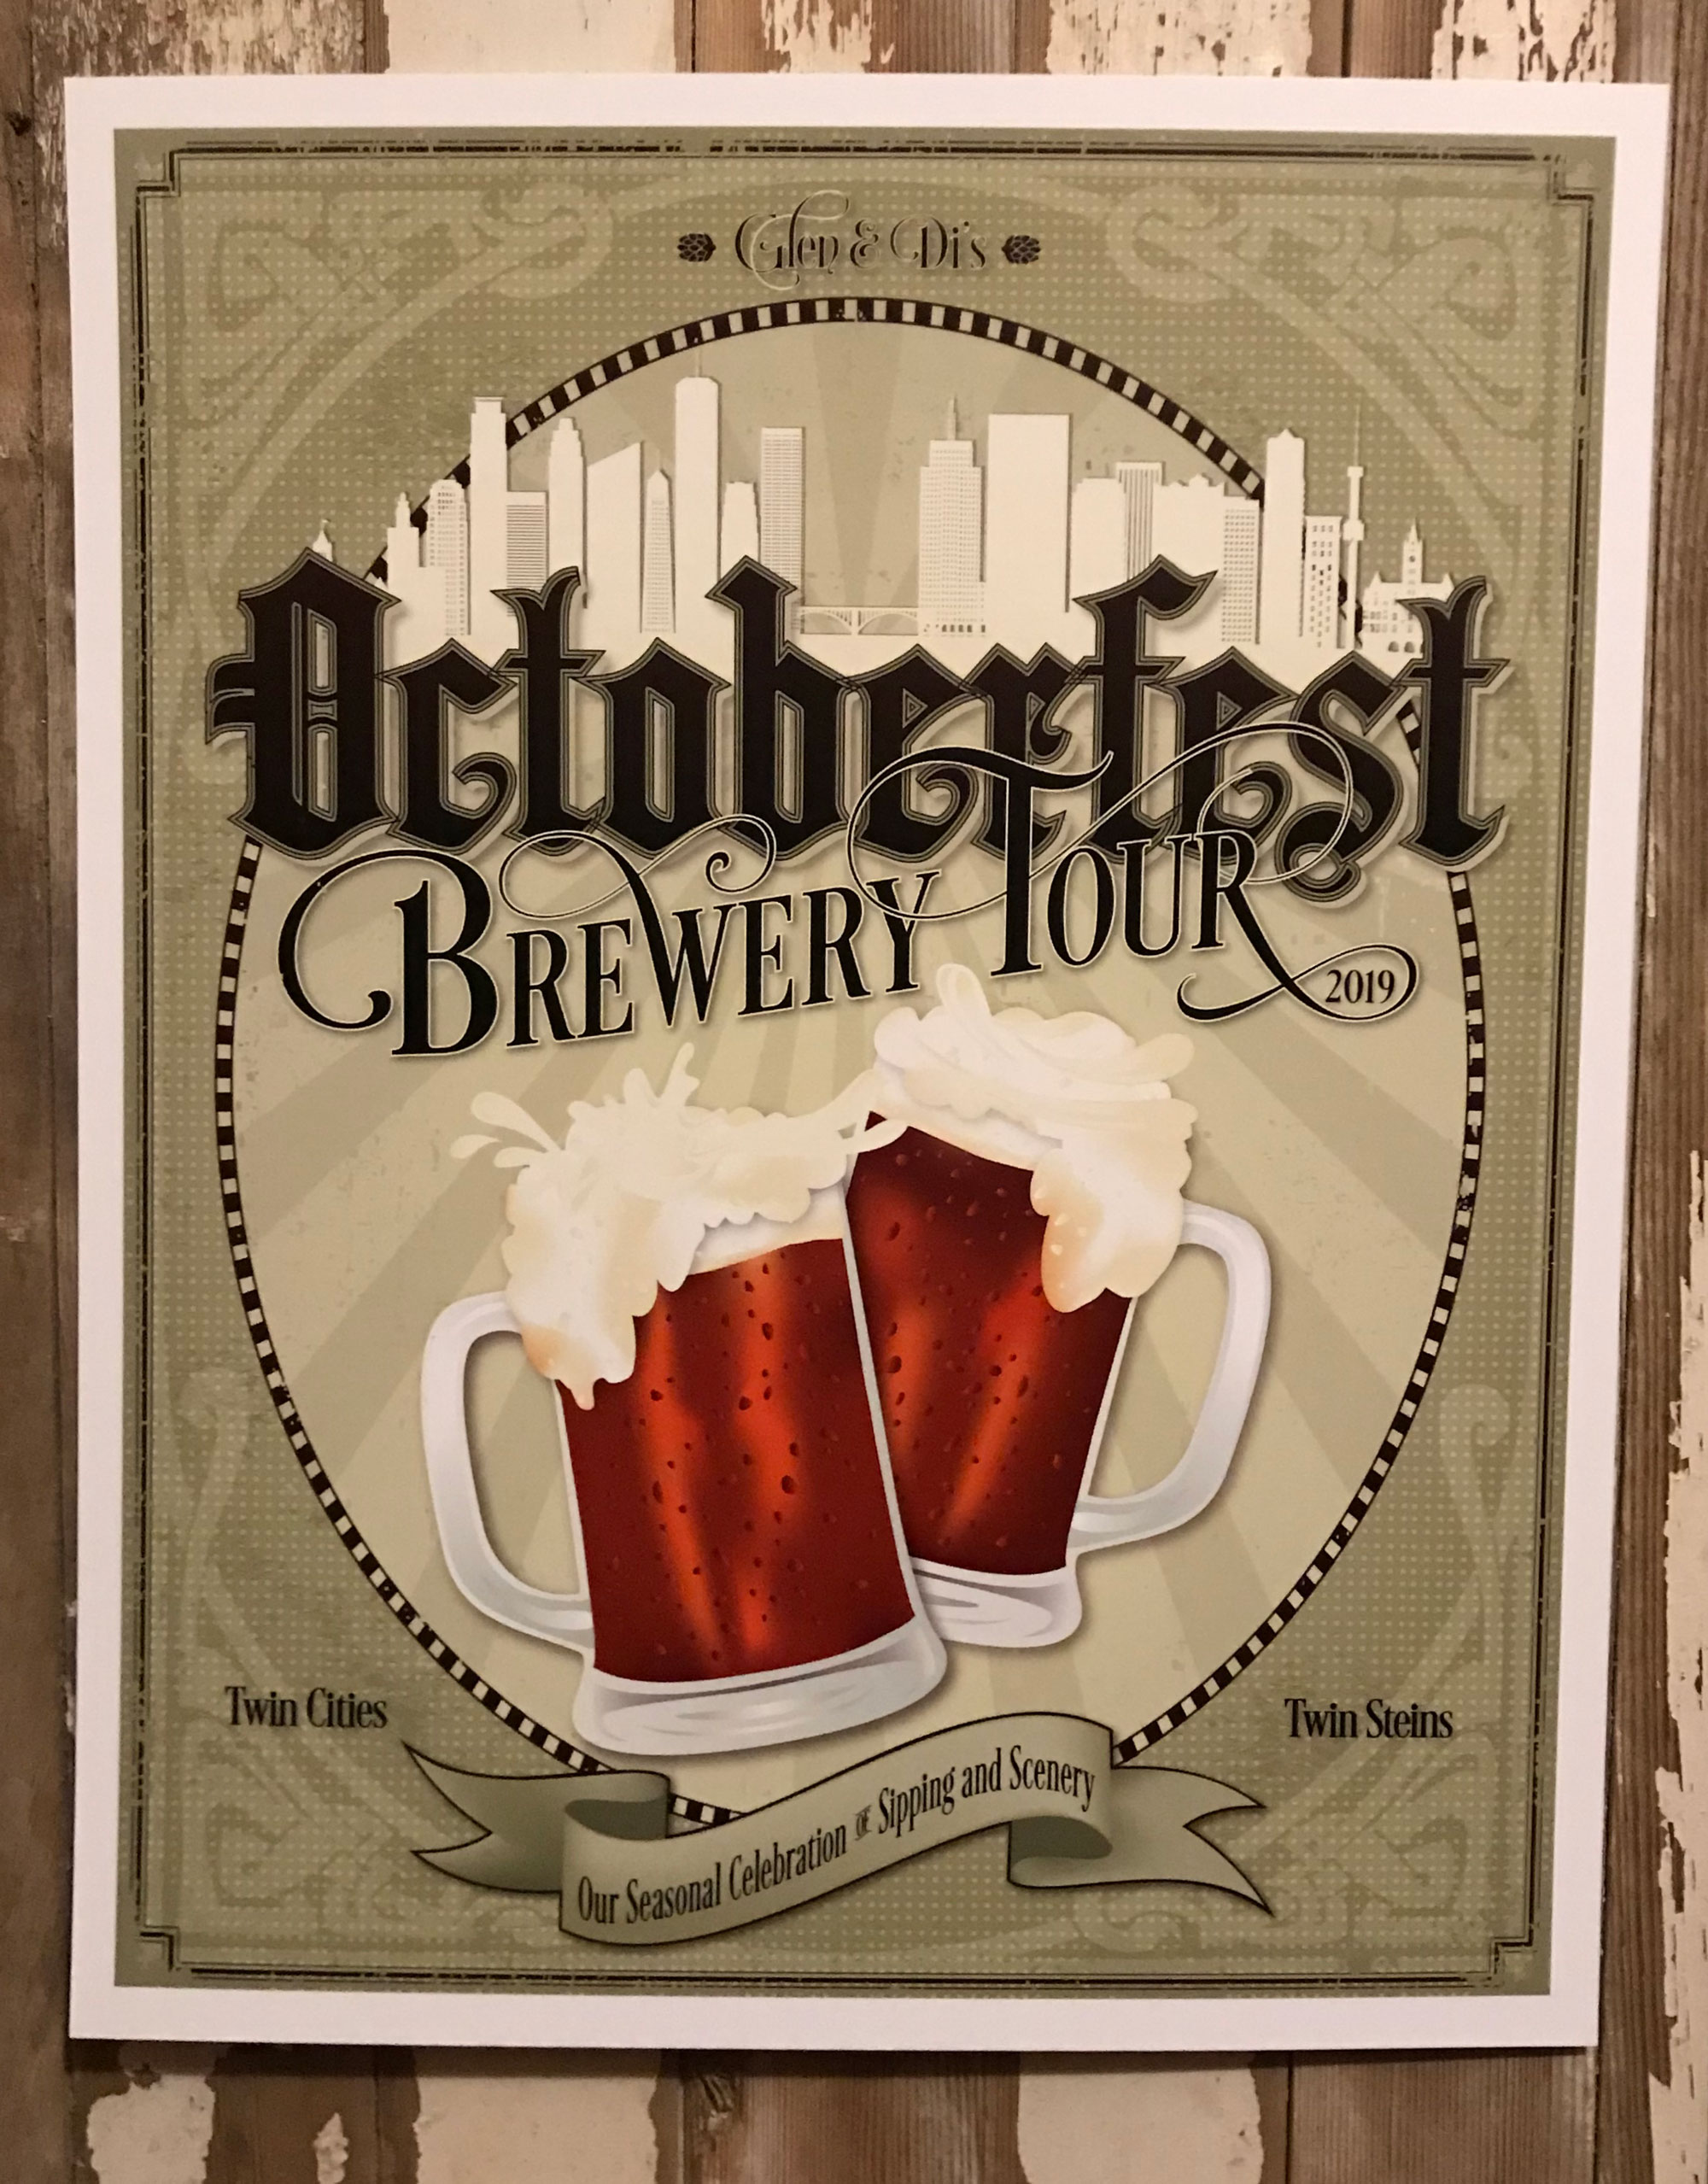 Octoberfest Beer poster by Adunate 2019